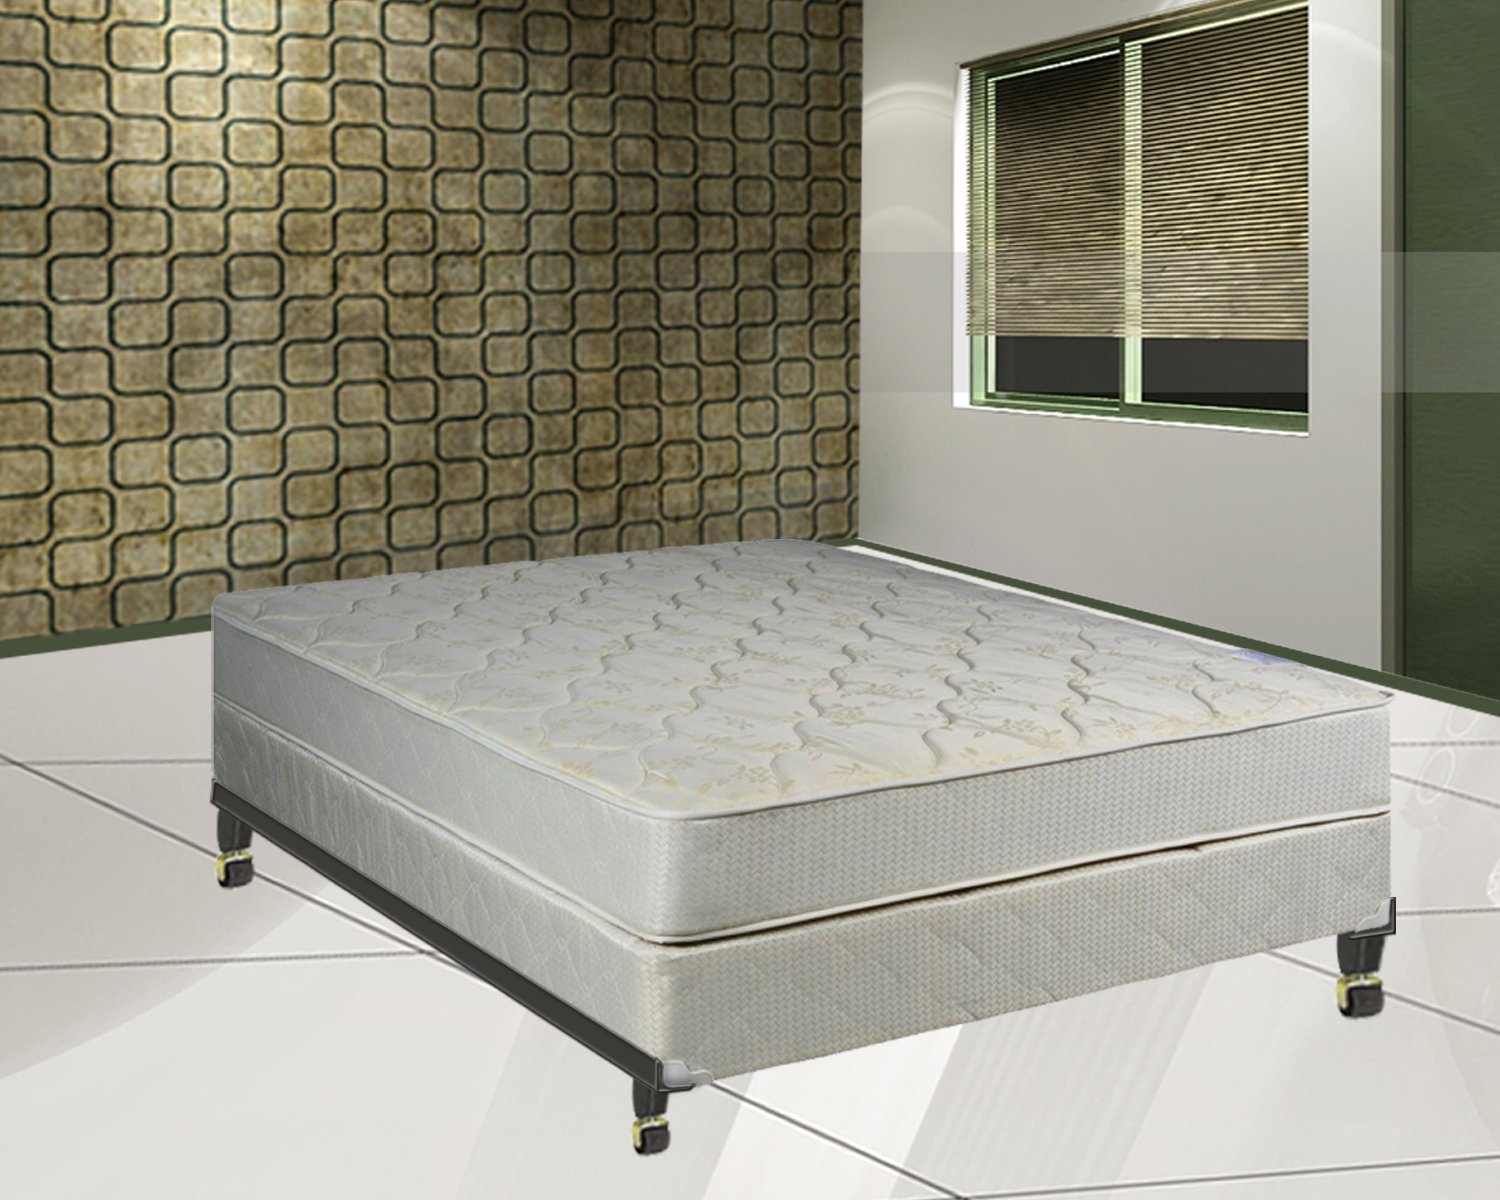 Elegant Collection Innerspring Mattress with Box Spring with Frame Foundation, Full Continental Sleep 99F-4/6-2